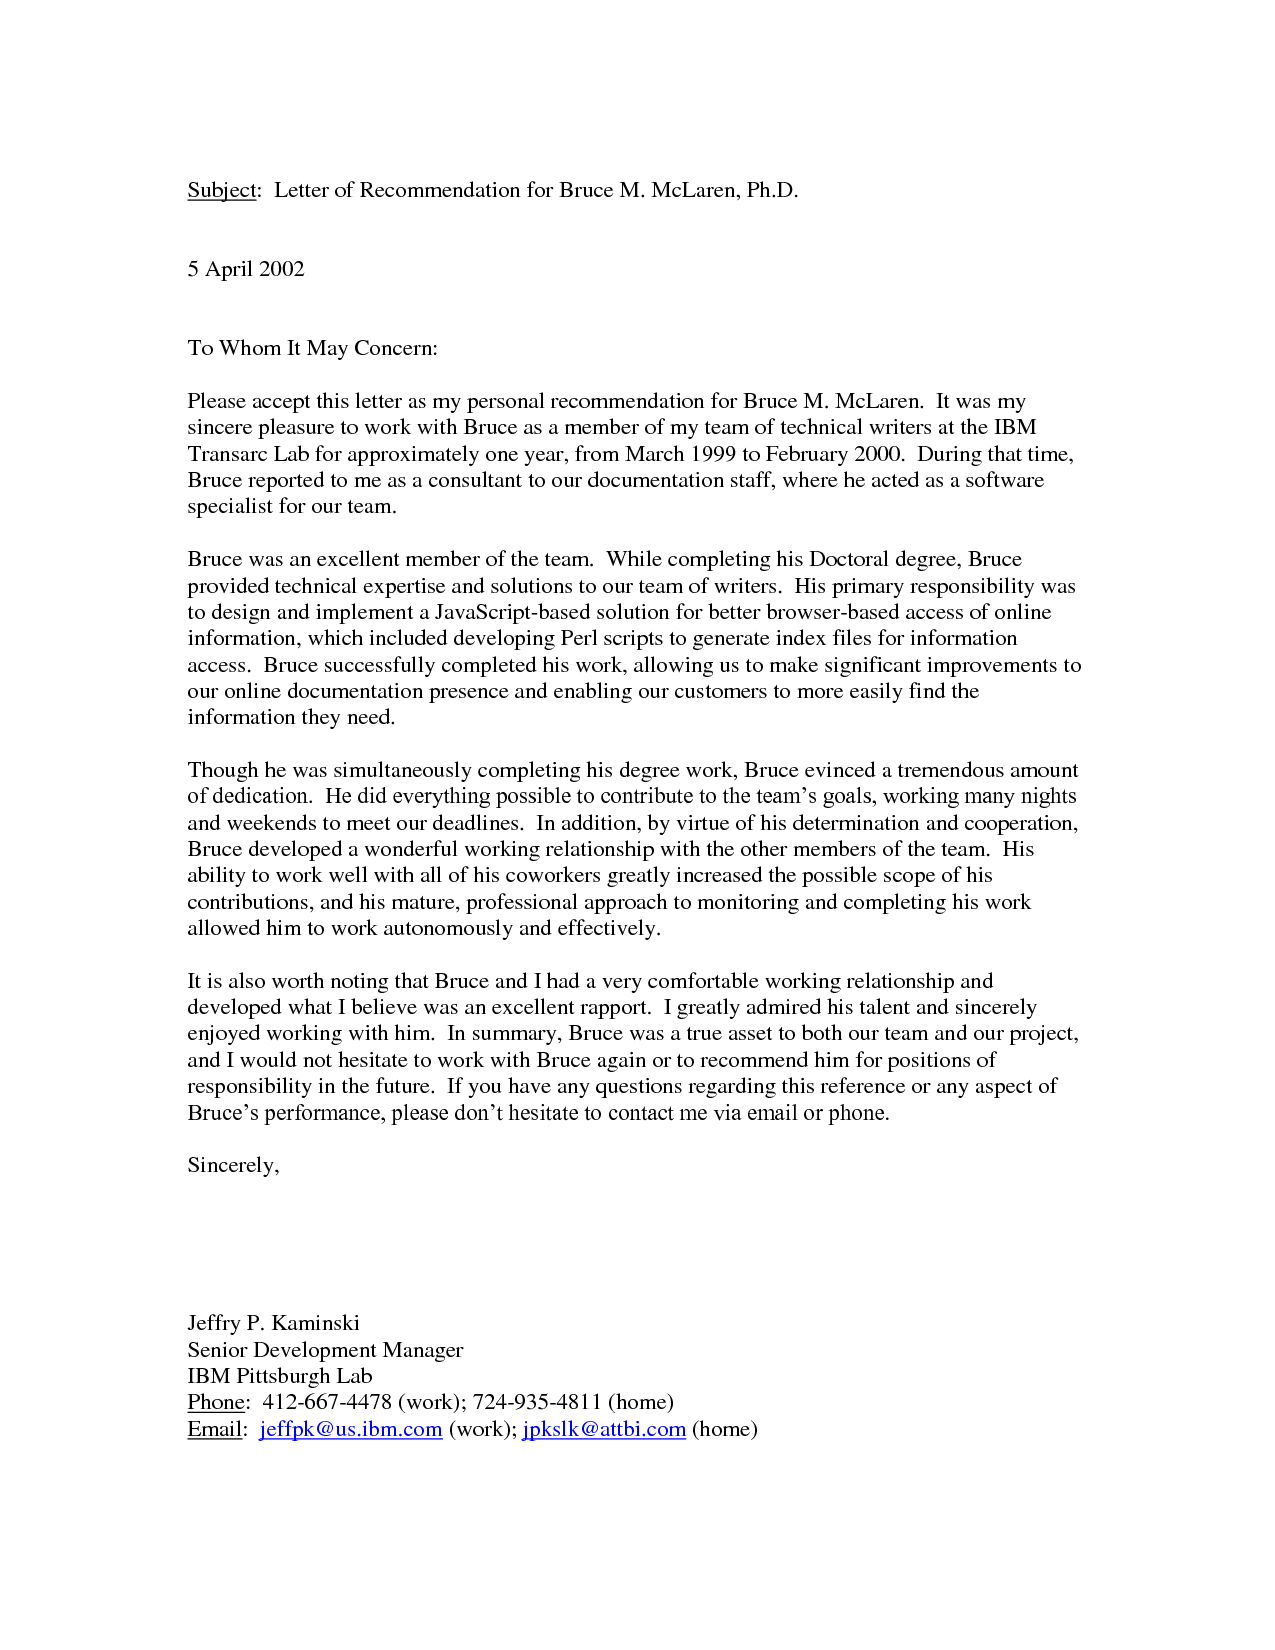 sample personal reference letter personal reference letter of recommendationletter of 1597